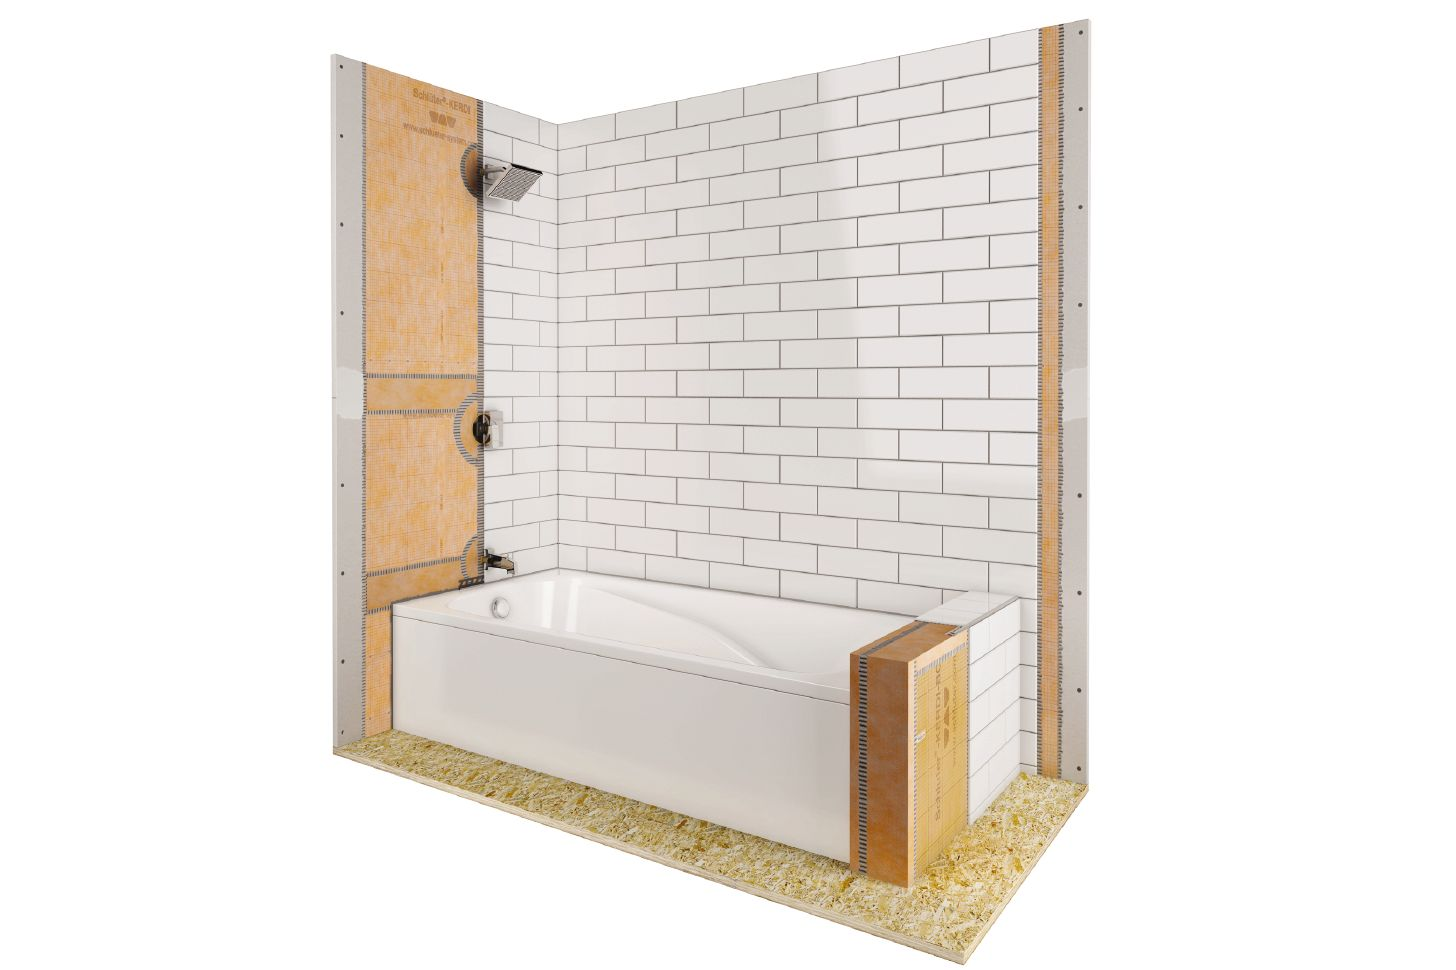 Waterproofing For The Shower With Bathtub